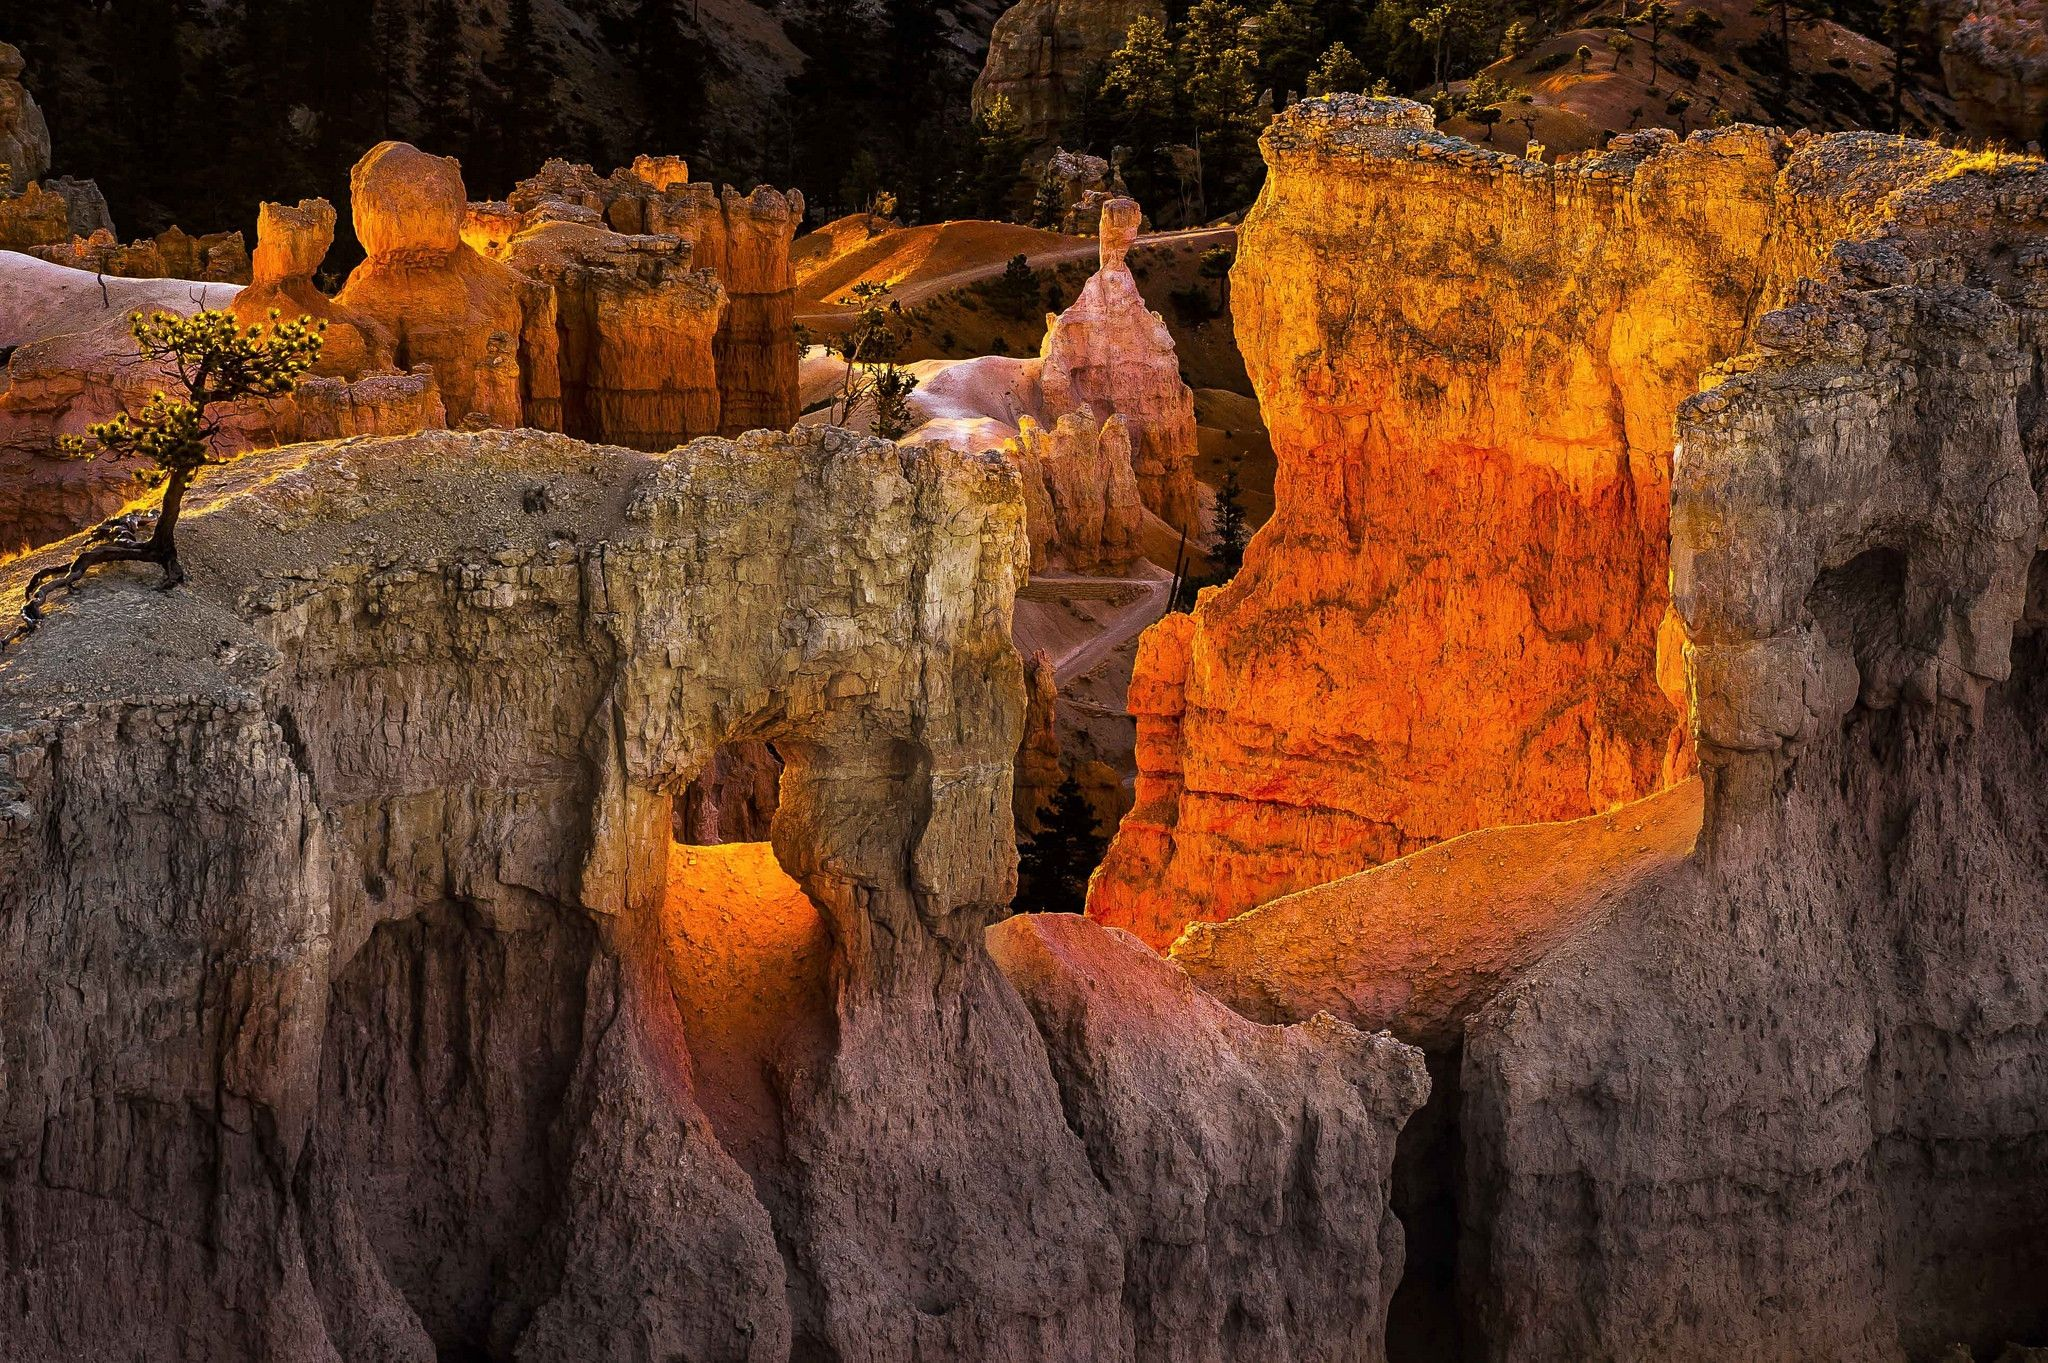 bryce canyon national park utah wallpaper photo and images - http